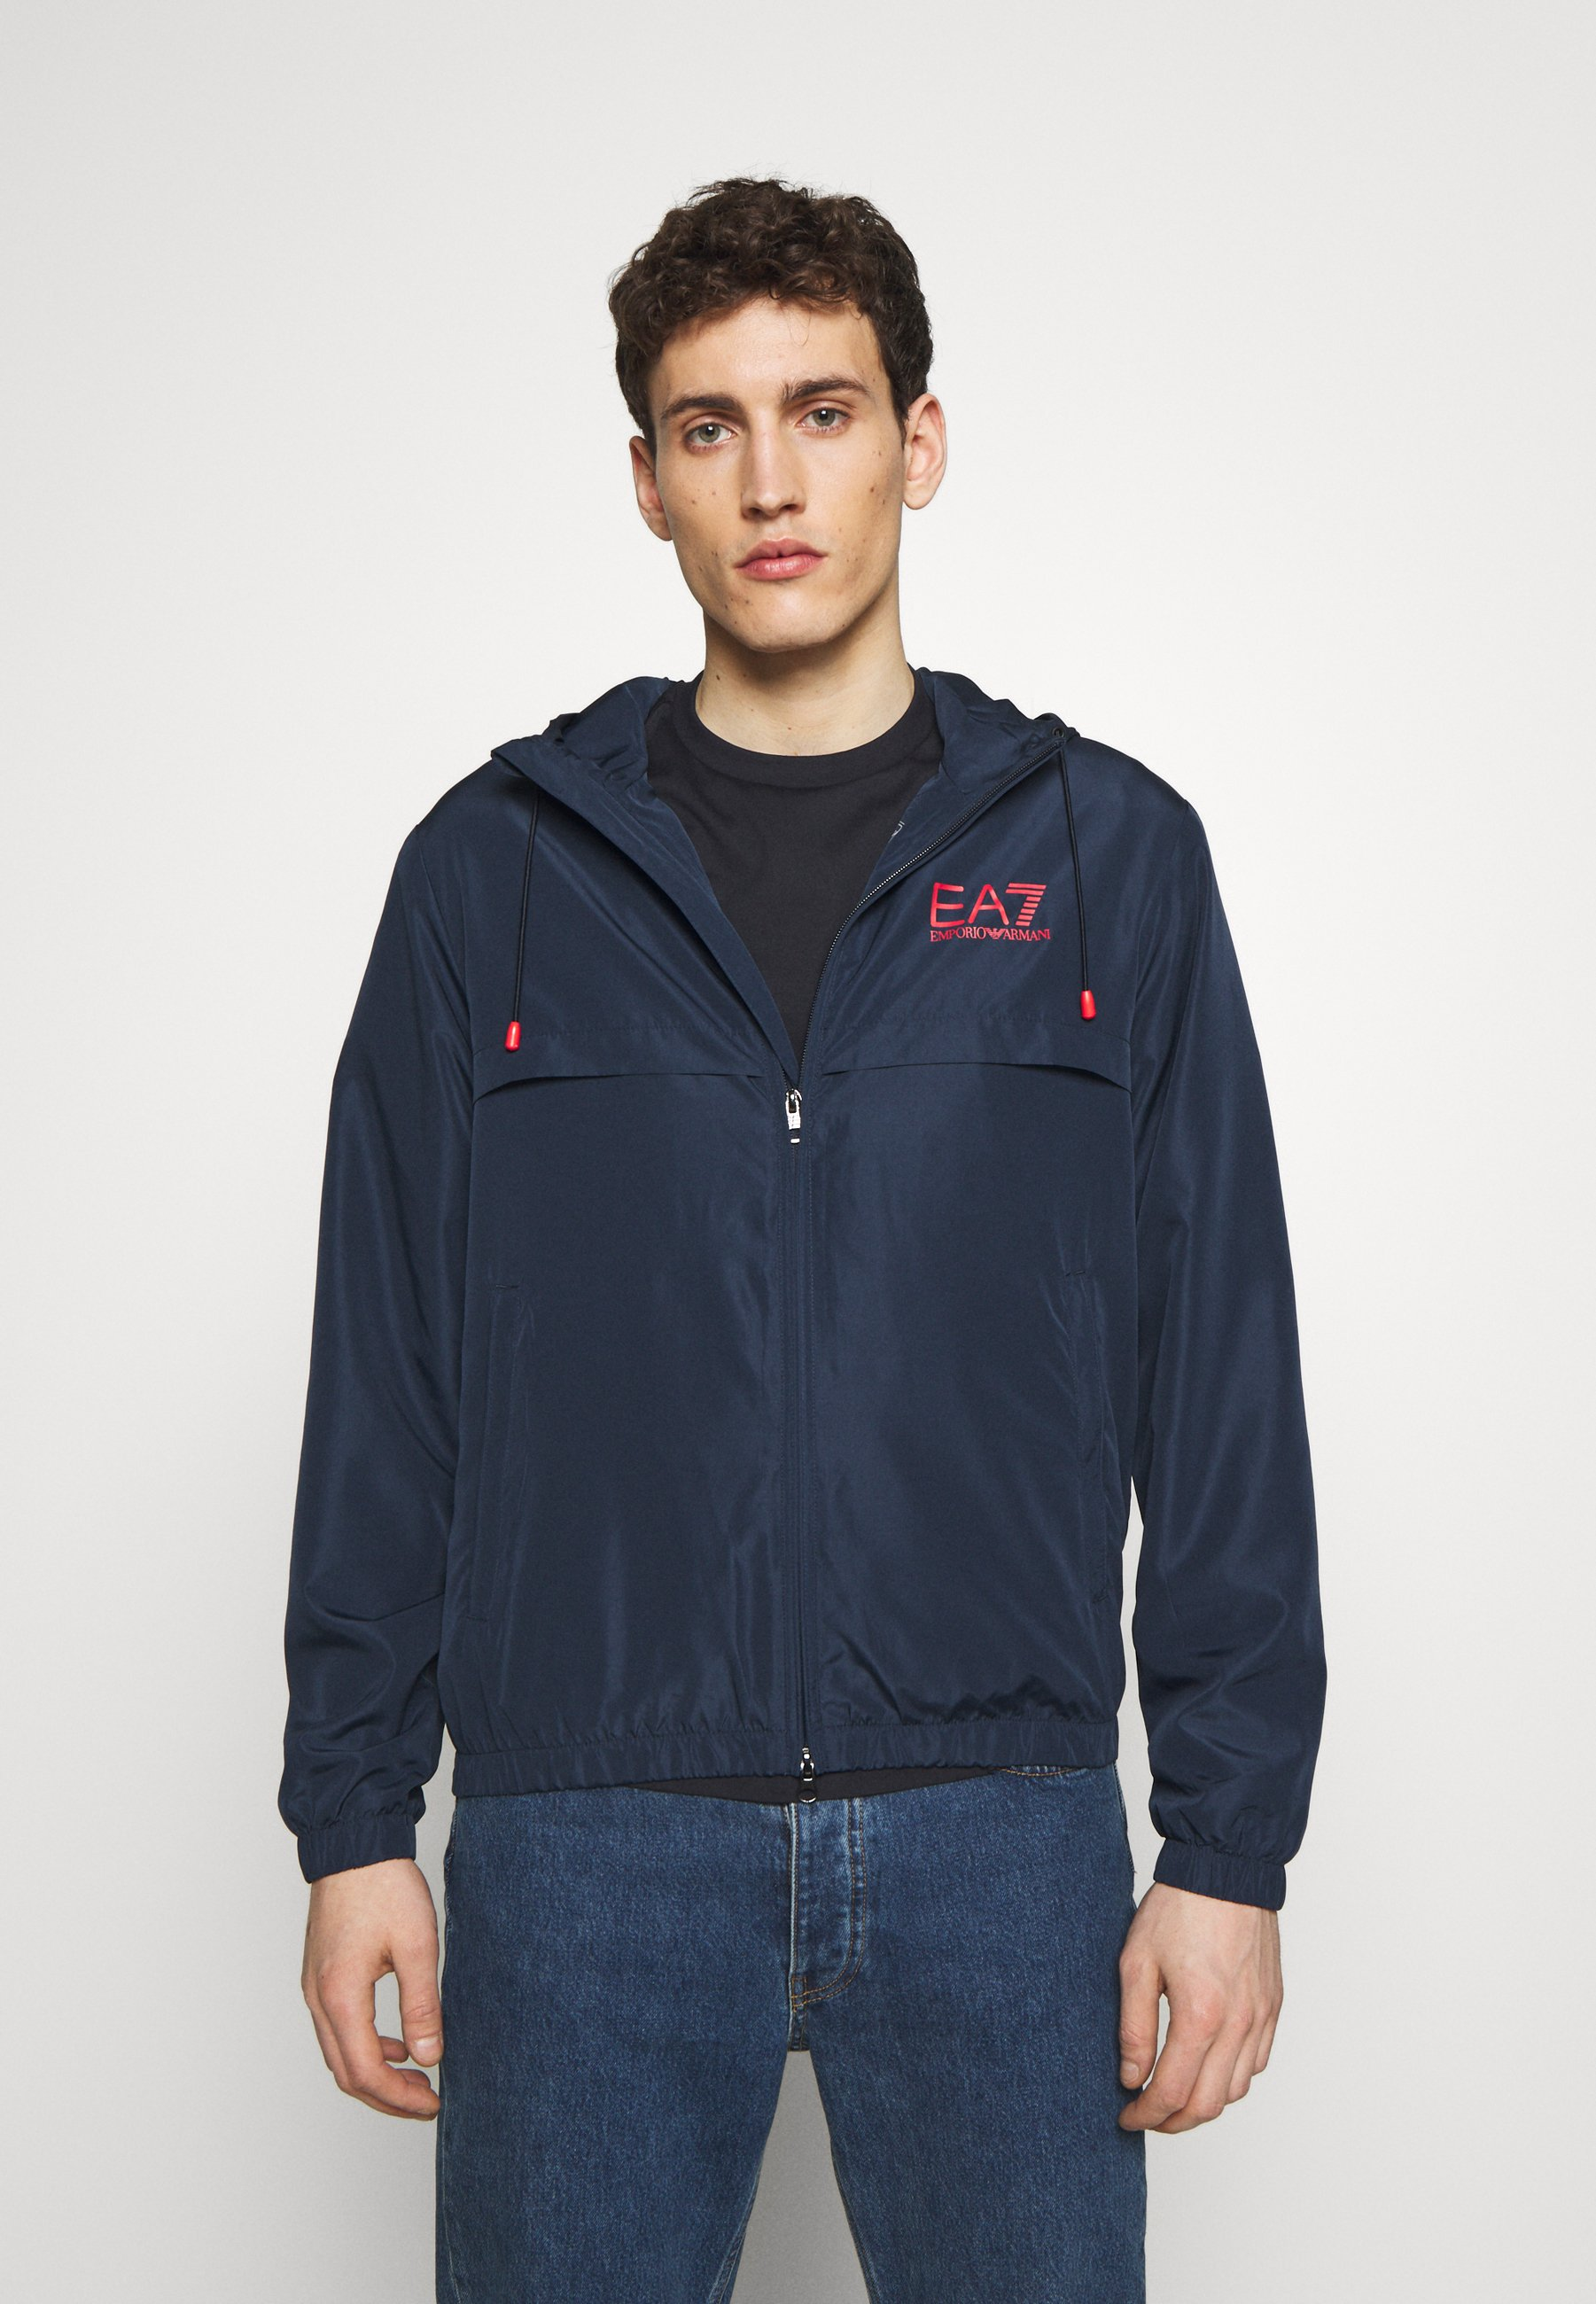 EA7 Emporio Armani GIUBBOTTO - Training jacket - navy blue